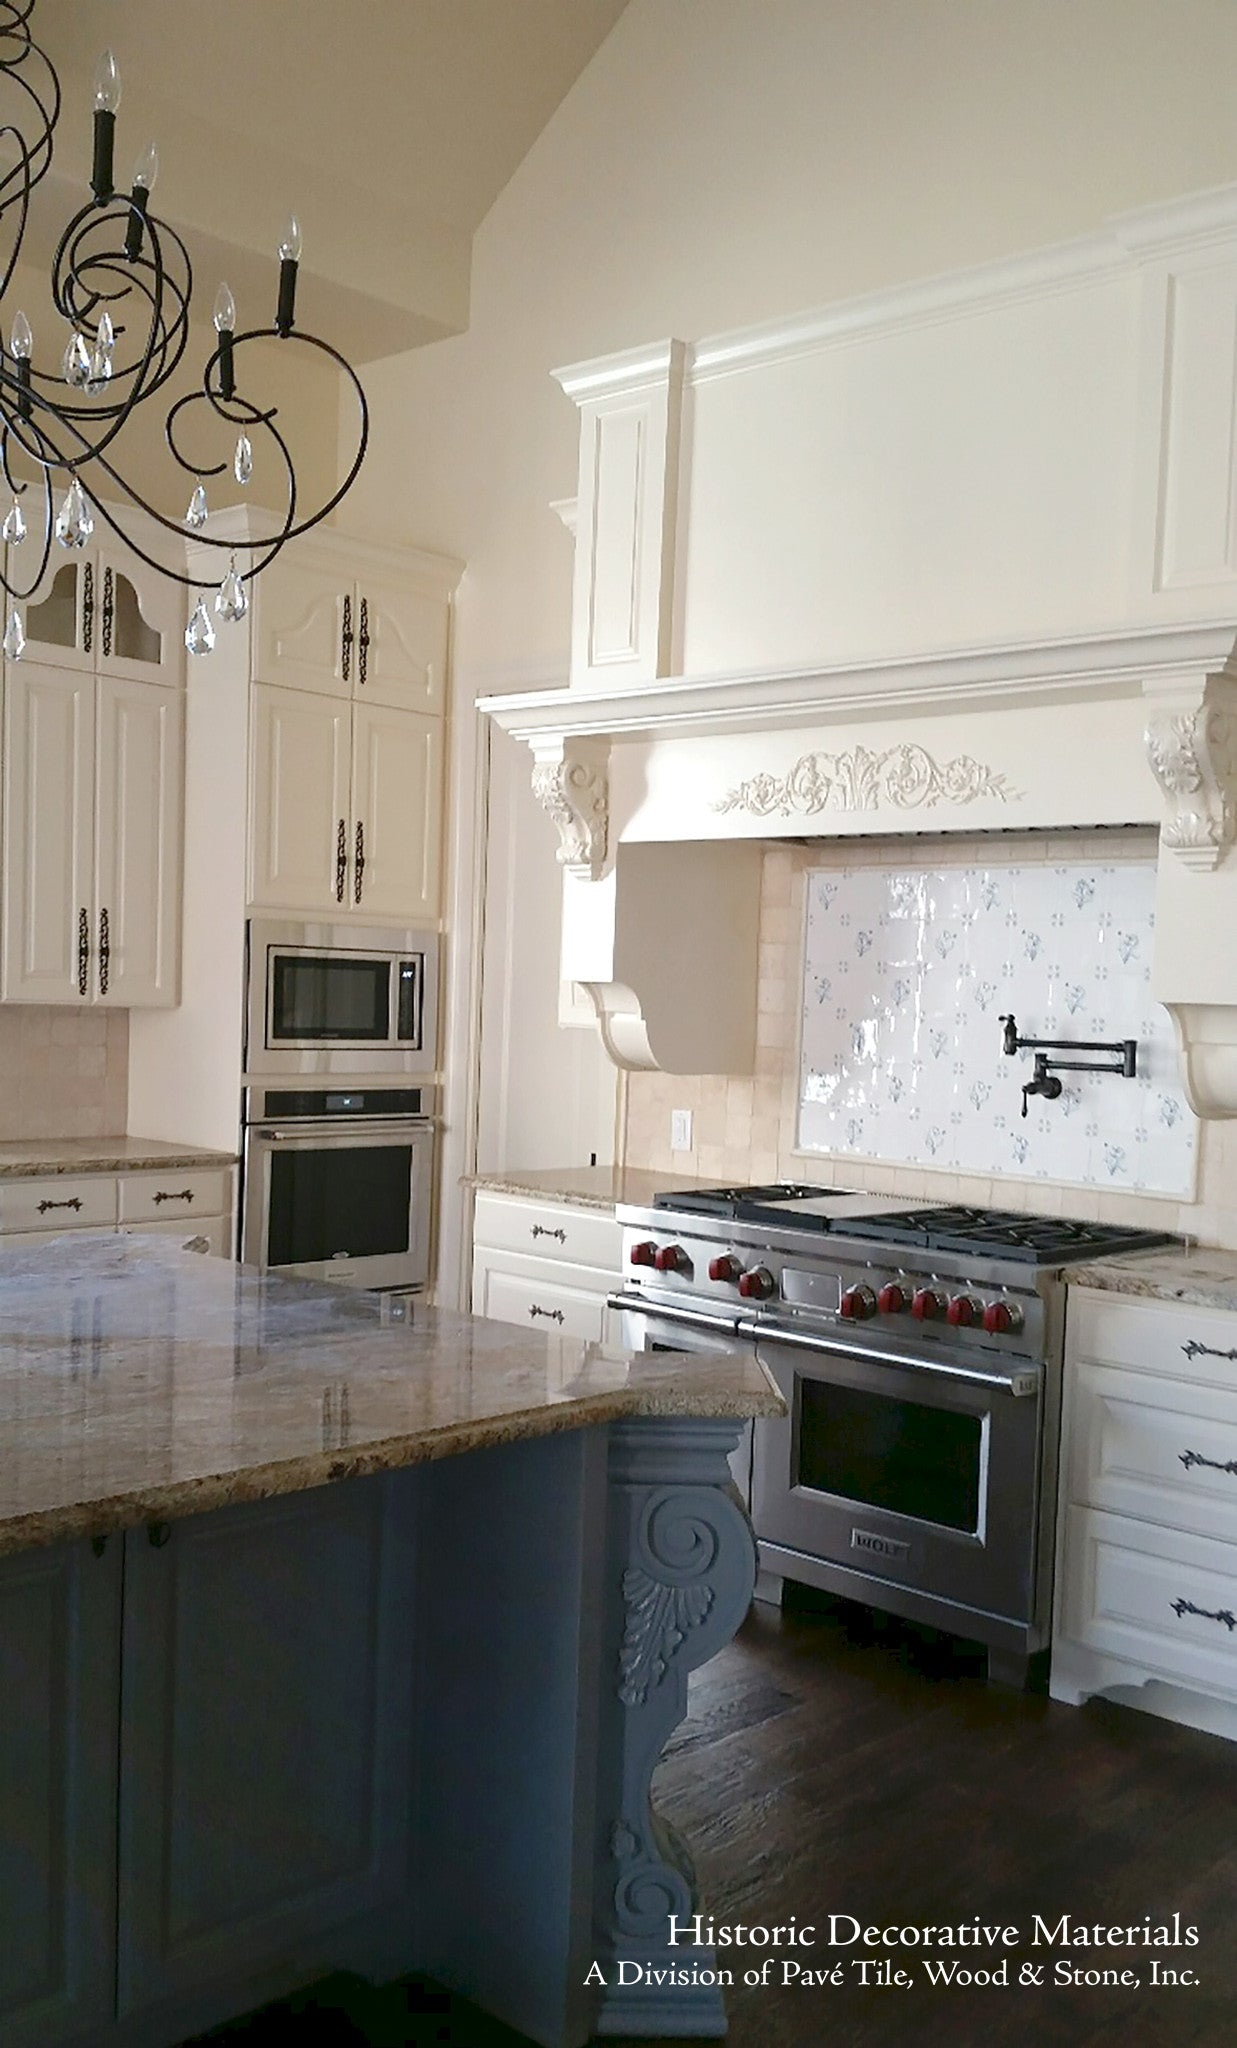 db meze field path tx recid france mantels containerbridge antique cheminee lay marble tiles fireplace c from houston